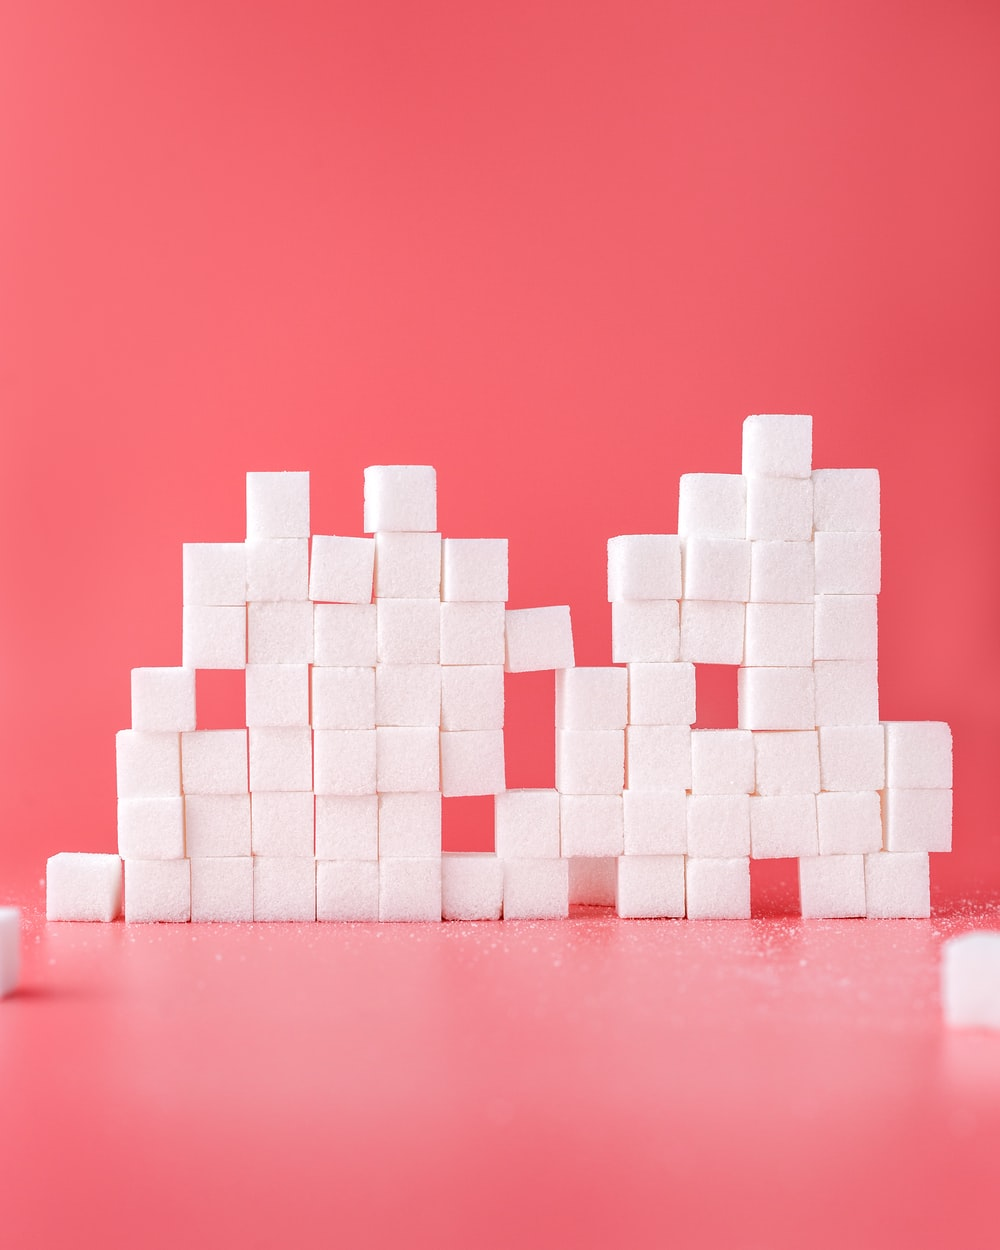 white sugar cube forming lines